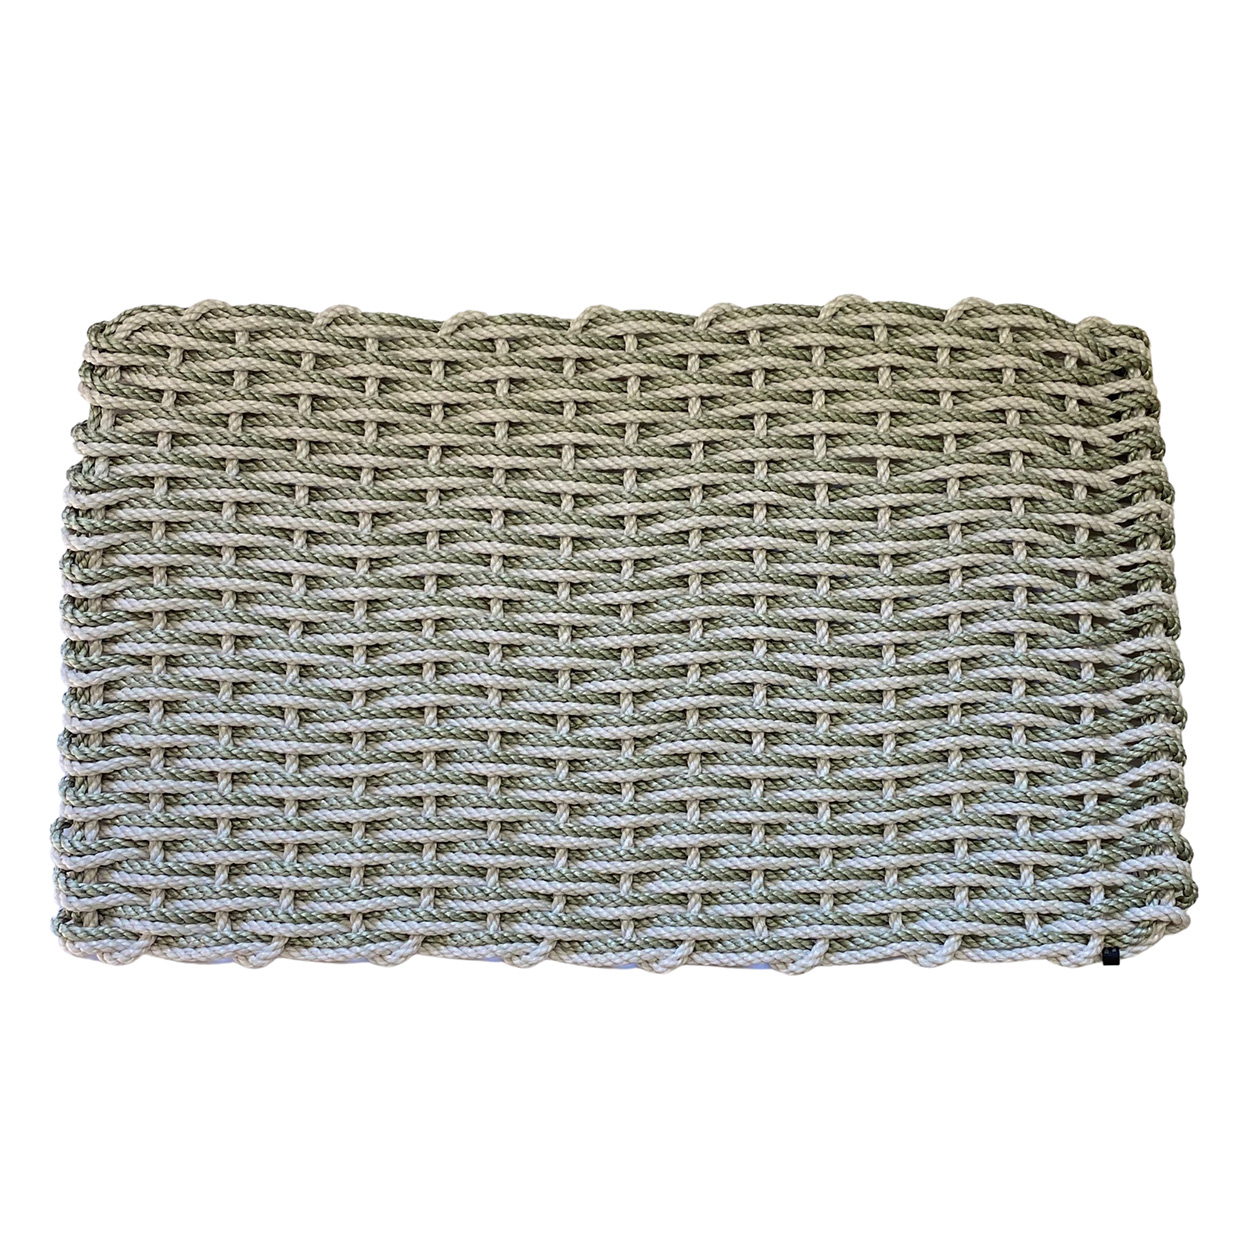 Rope Co. Doormat-Oyster & Sage